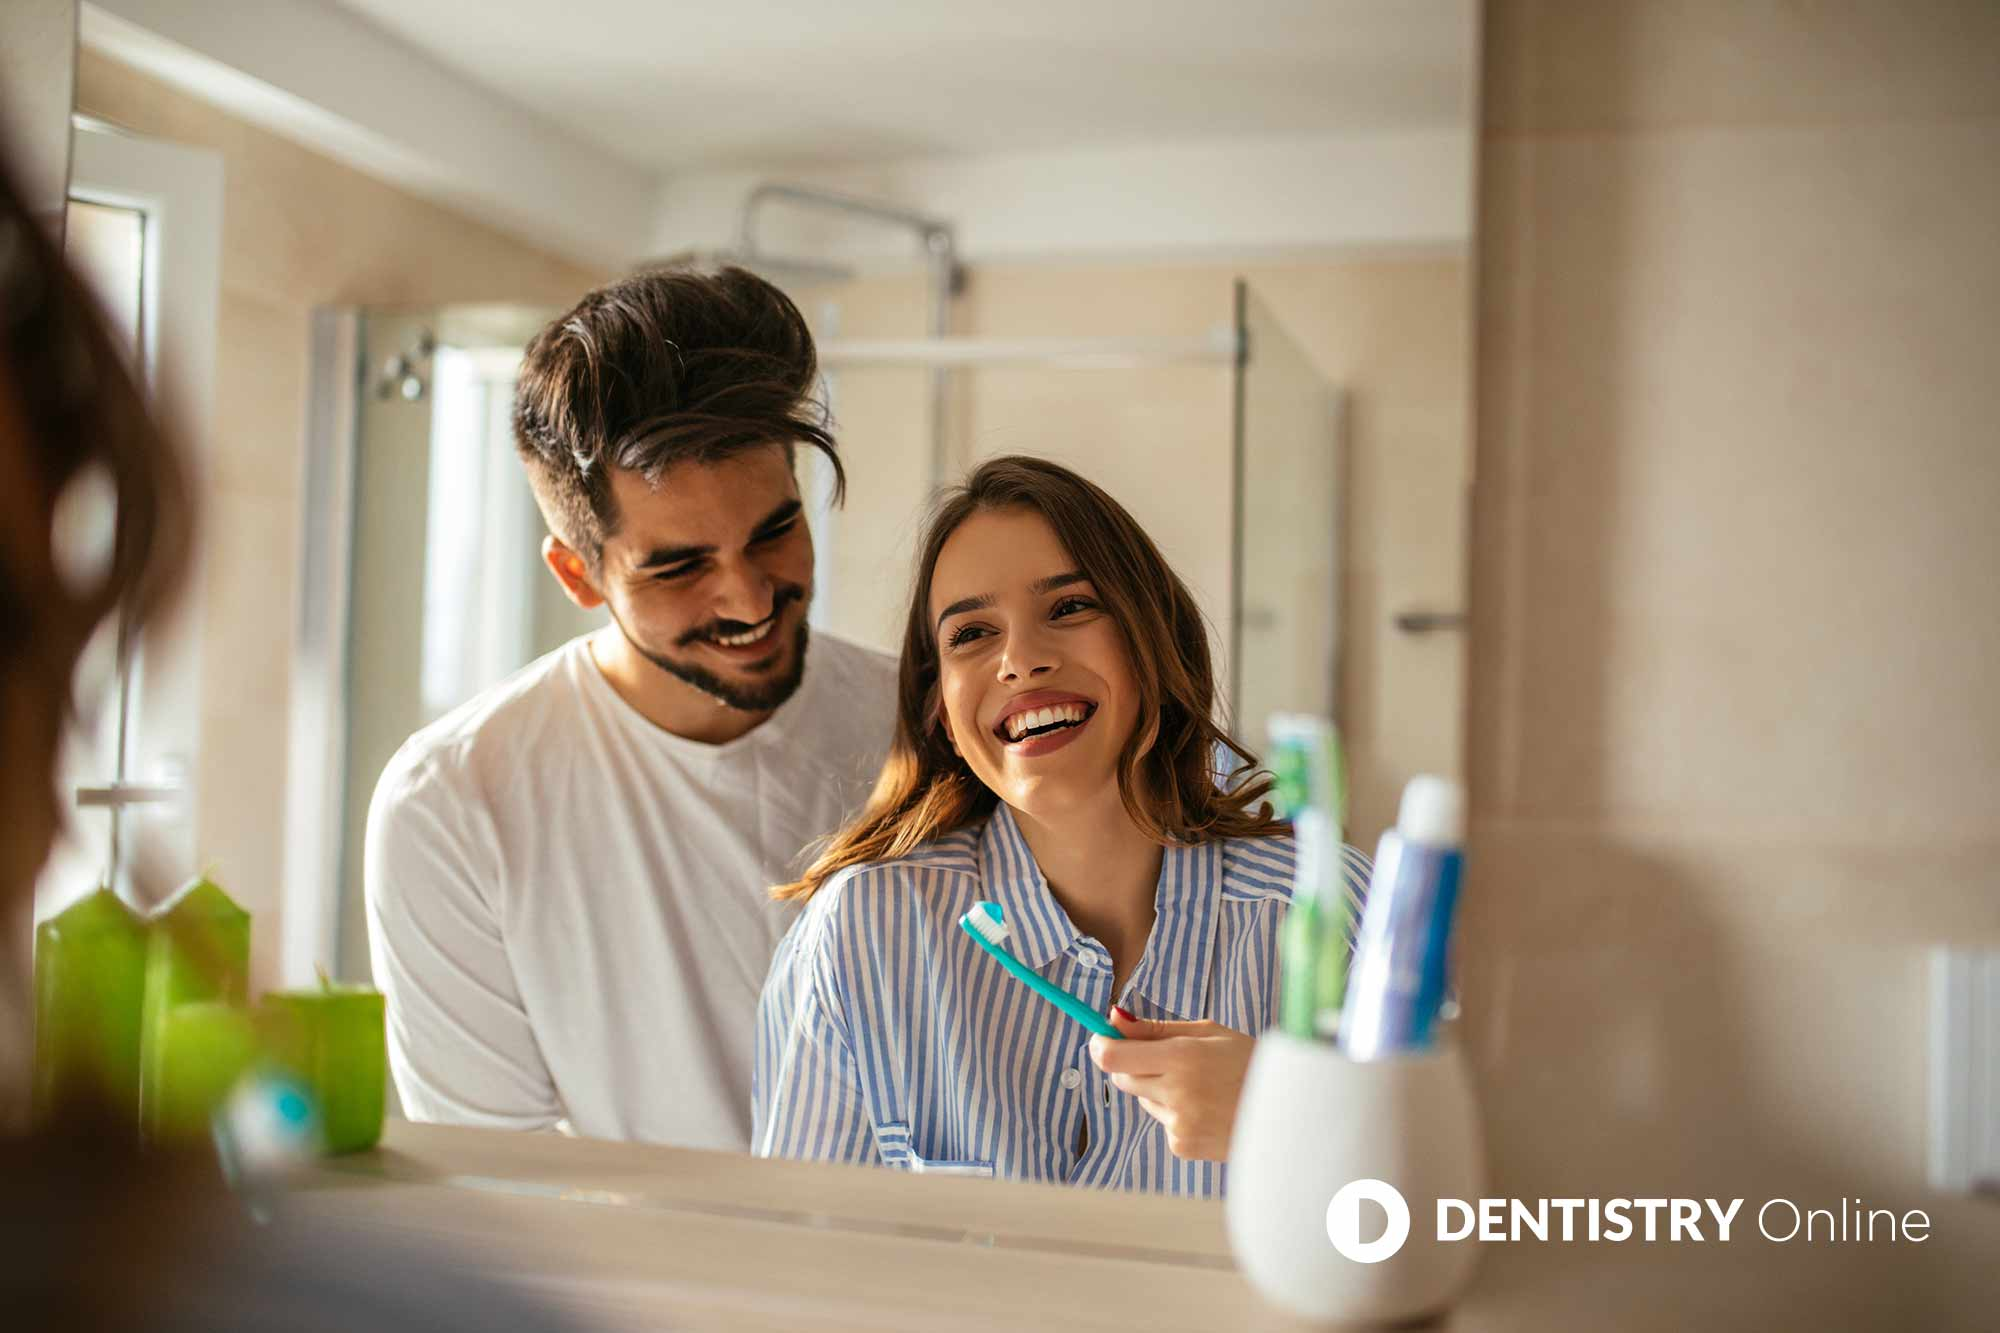 Sharing the same toothbrush and toothpaste can significantly increase the spread of COVID-19 transmission, according to latest research